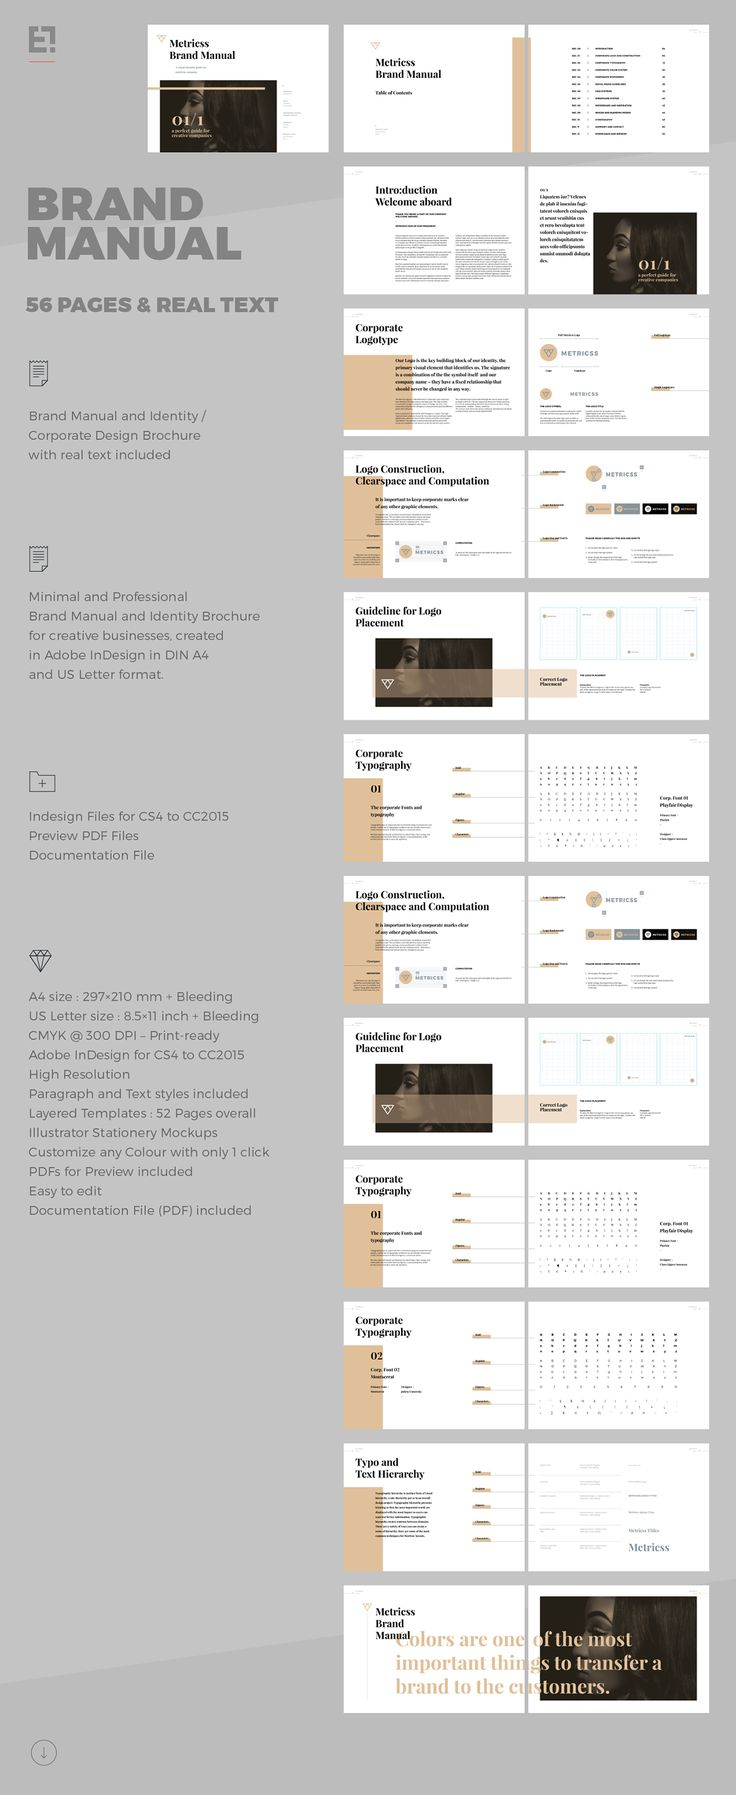 Purchase Order Template Open Office Delectable 35 Best Styles Guide Images On Pinterest  Brand Design Branding .